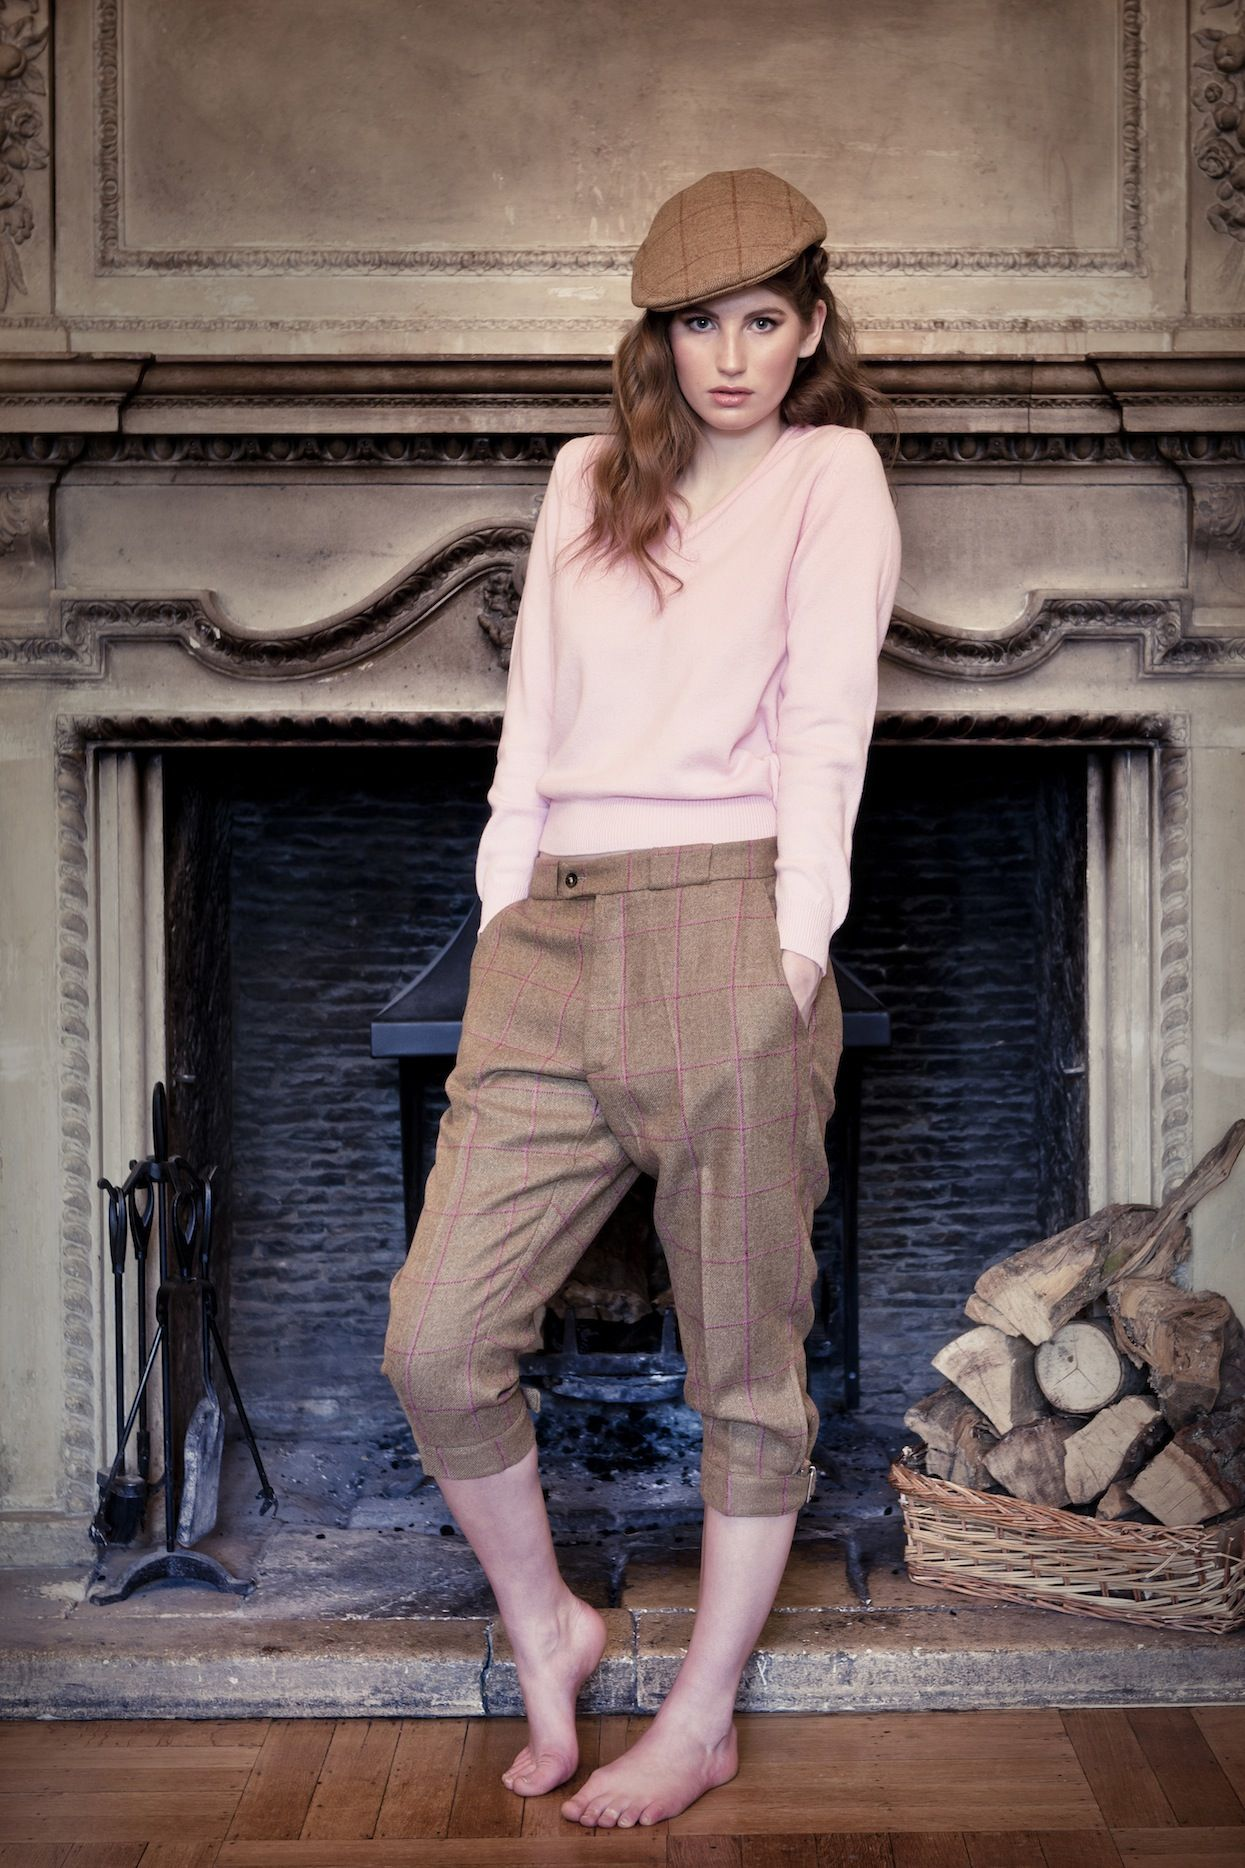 English Country Clothing Google Search English Country Pinterest Tweed Country Fashion